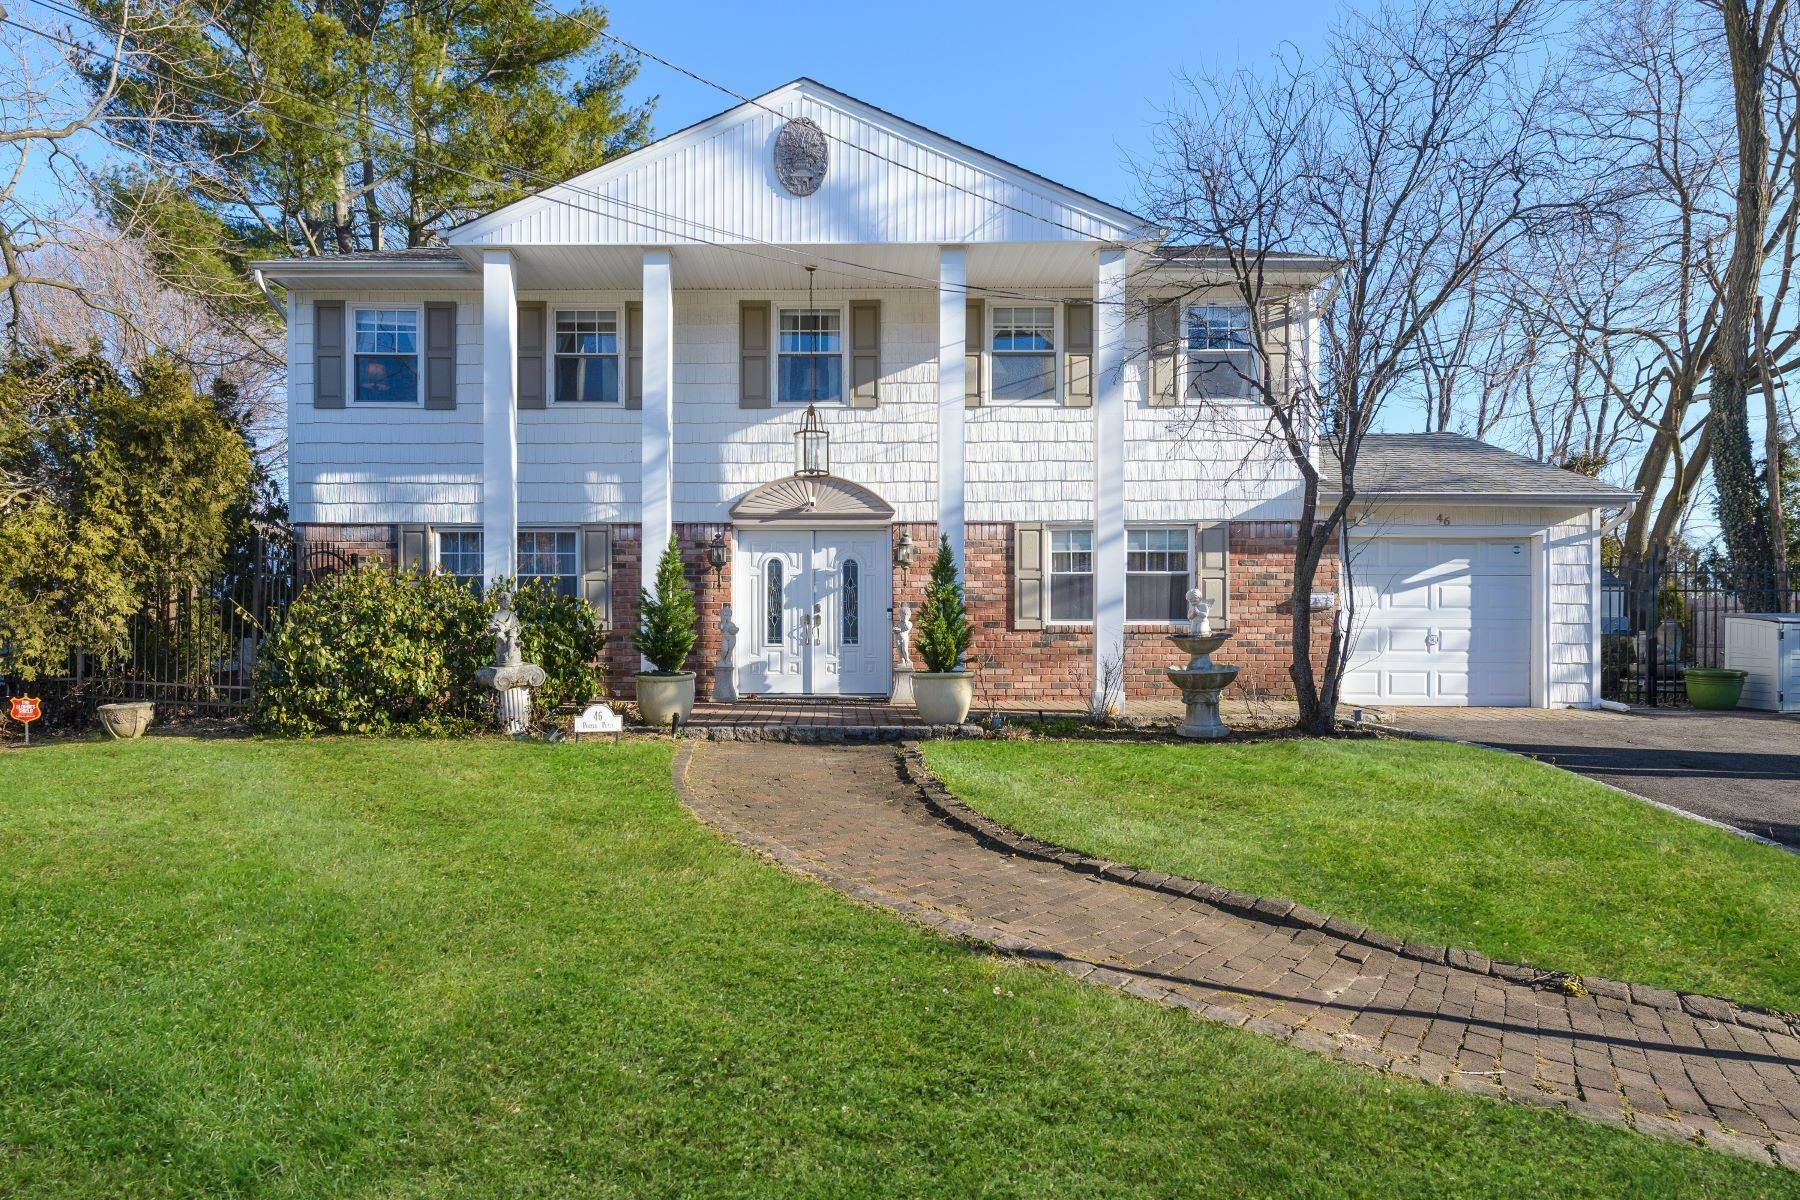 Single Family Homes for Active at 46 Porter Place, Glen Cove, Ny, 11542 46 Porter Place Glen Cove, New York 11542 United States